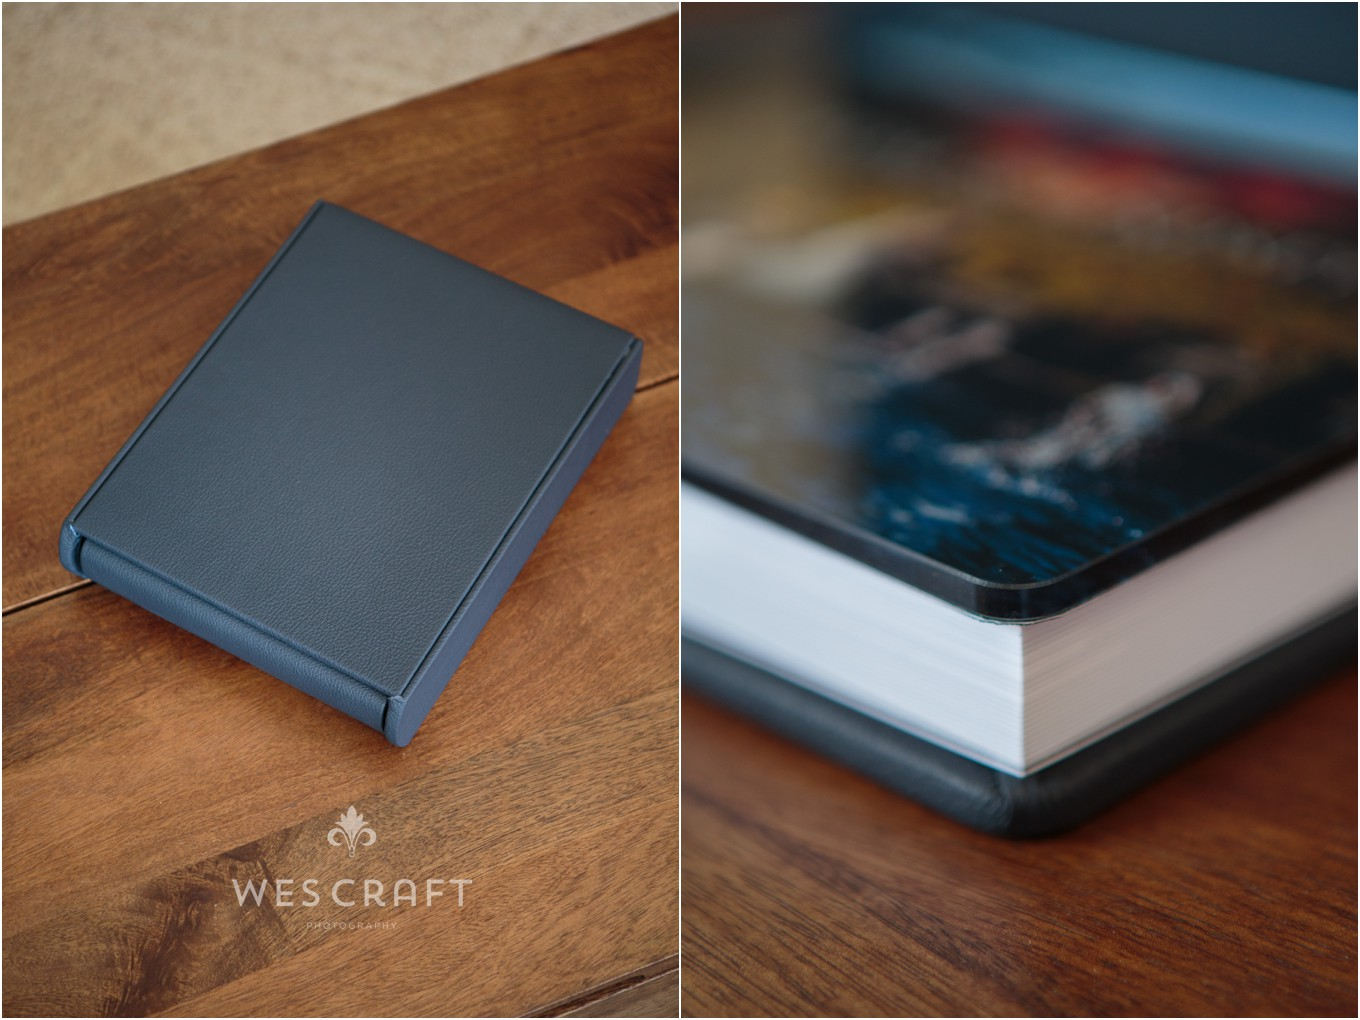 This Italian printed and bound album was given a deep blue leather binding with an acrylic photographic cover.